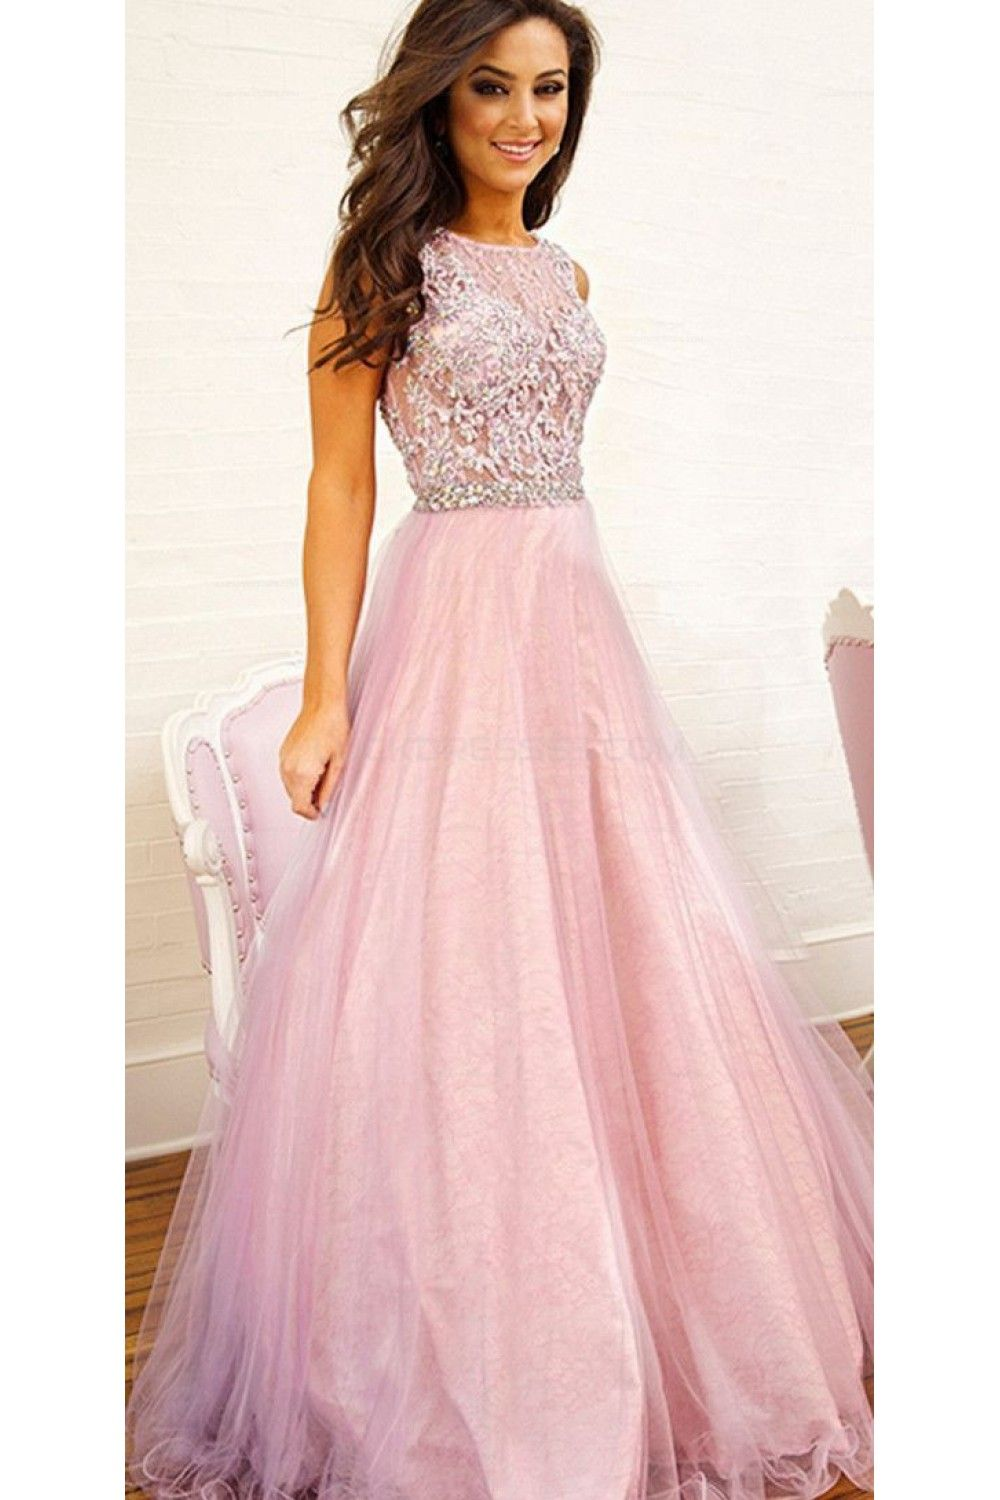 Elegant Long Pink Prom Evening Party Dresses 3020687 | Pinterest ...